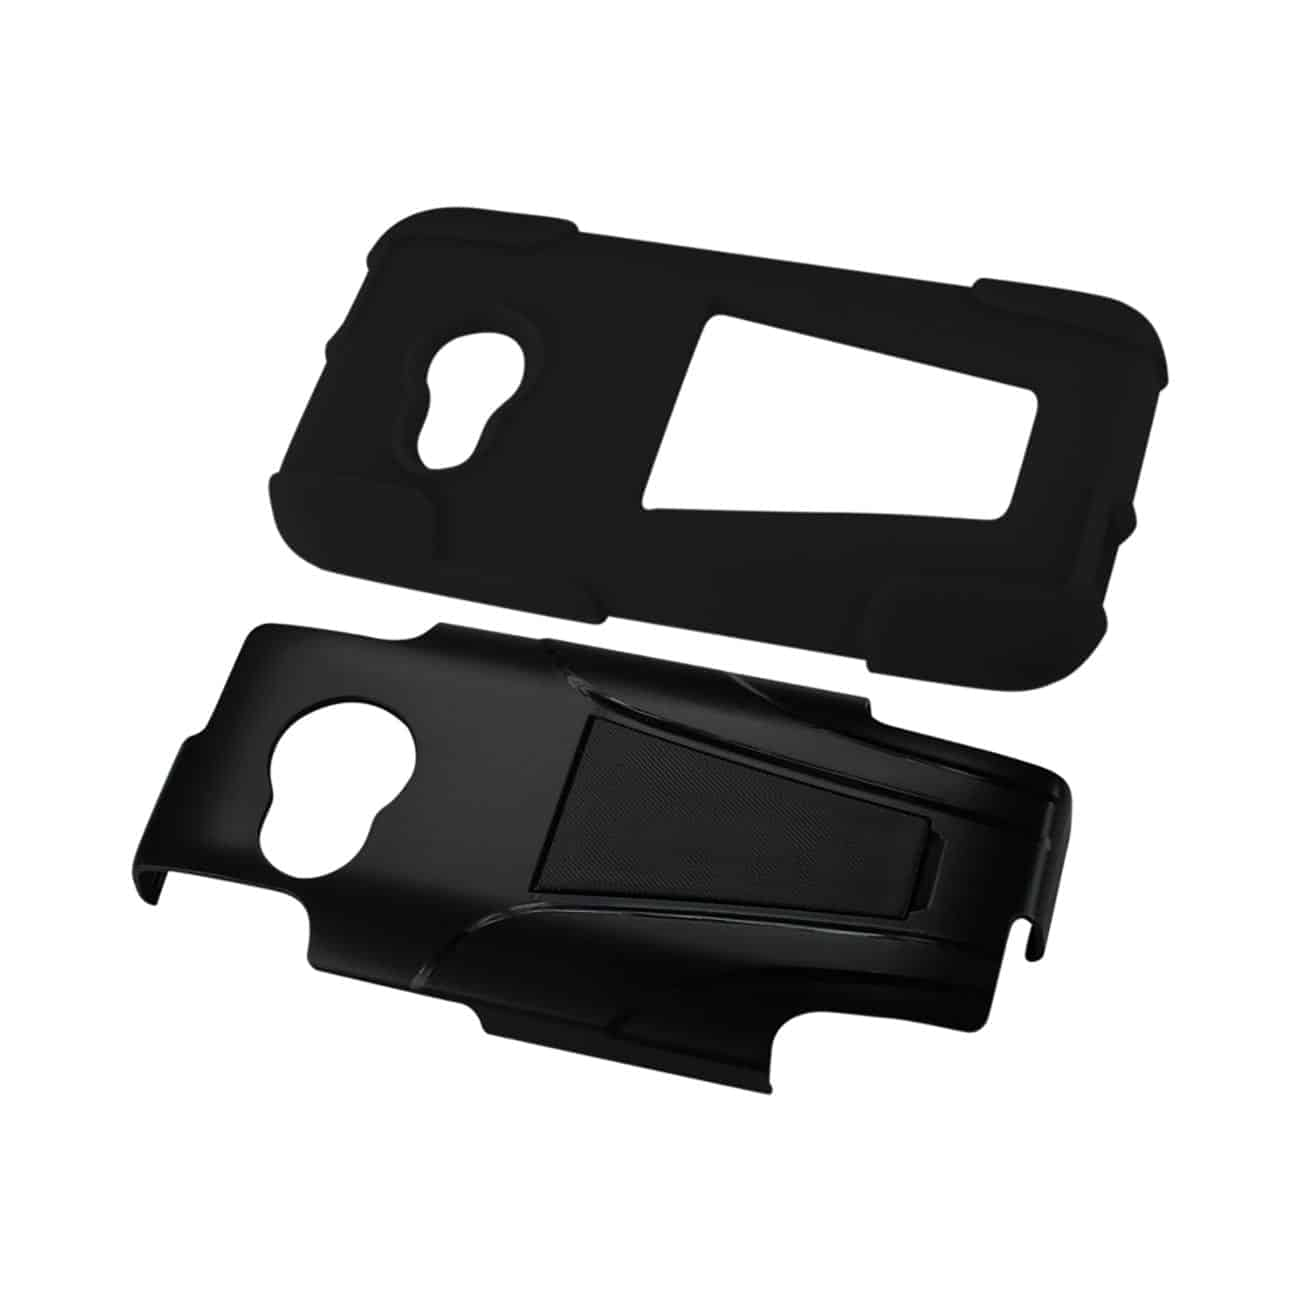 HTC ONE MINI 2 HYBRID HEAVY DUTY CASE WITH KICKSTAND IN BLACK